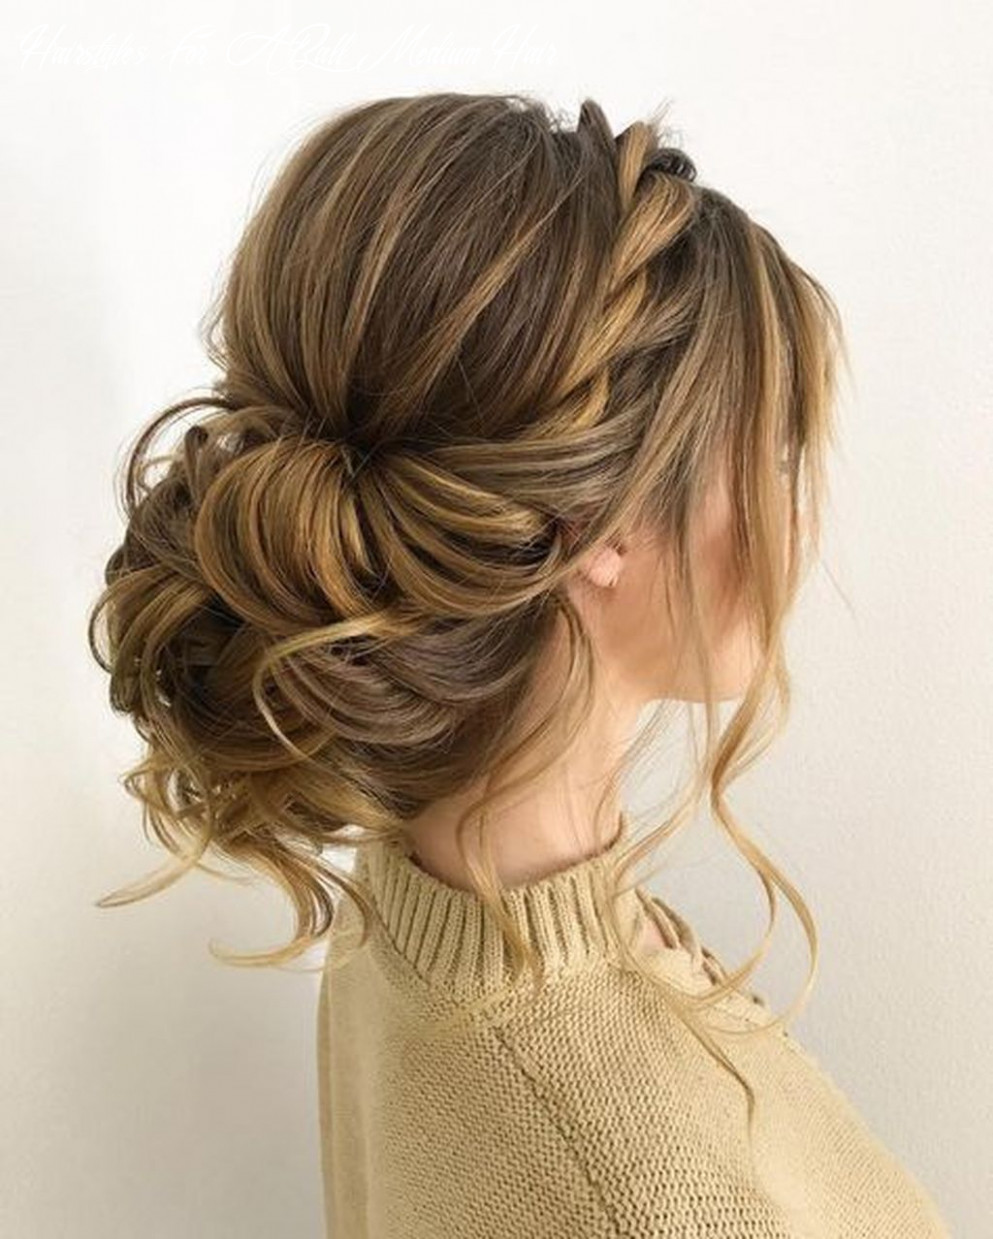 Pin by yolanda hernandez on cabello   braided hairstyles for